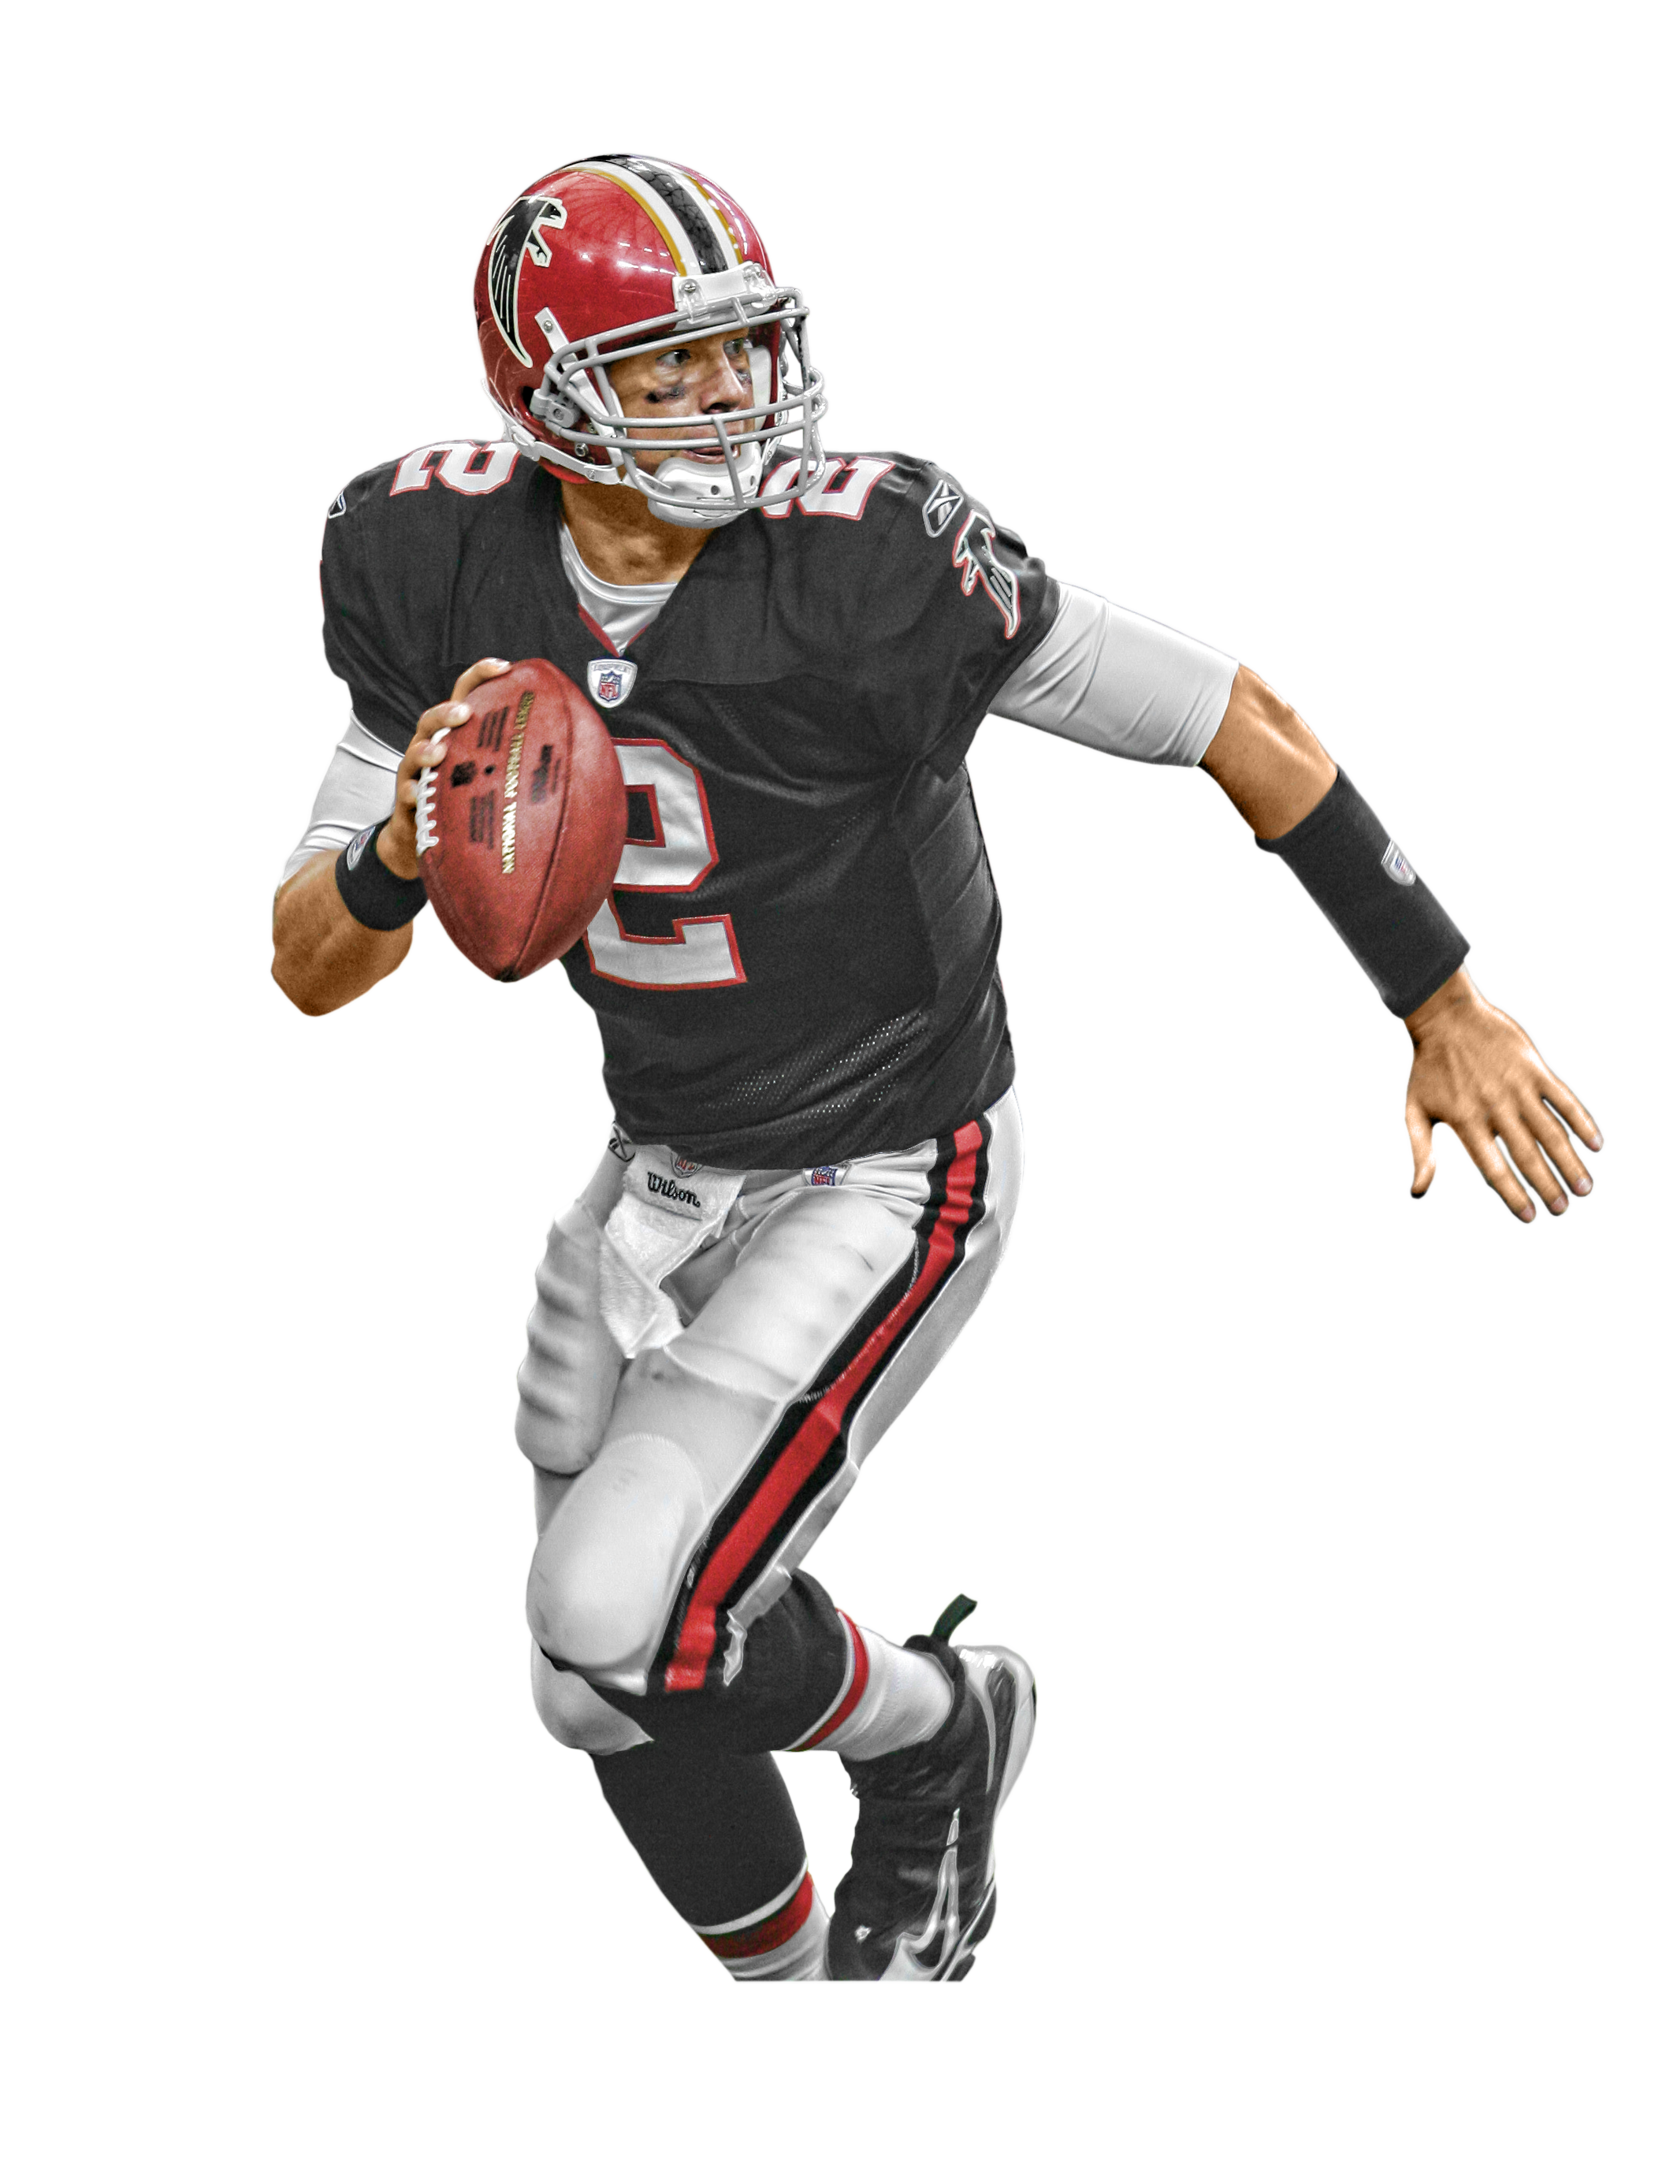 Matt Ryan Png - Matt Ryan Png (92+ images in Collection) Page 1